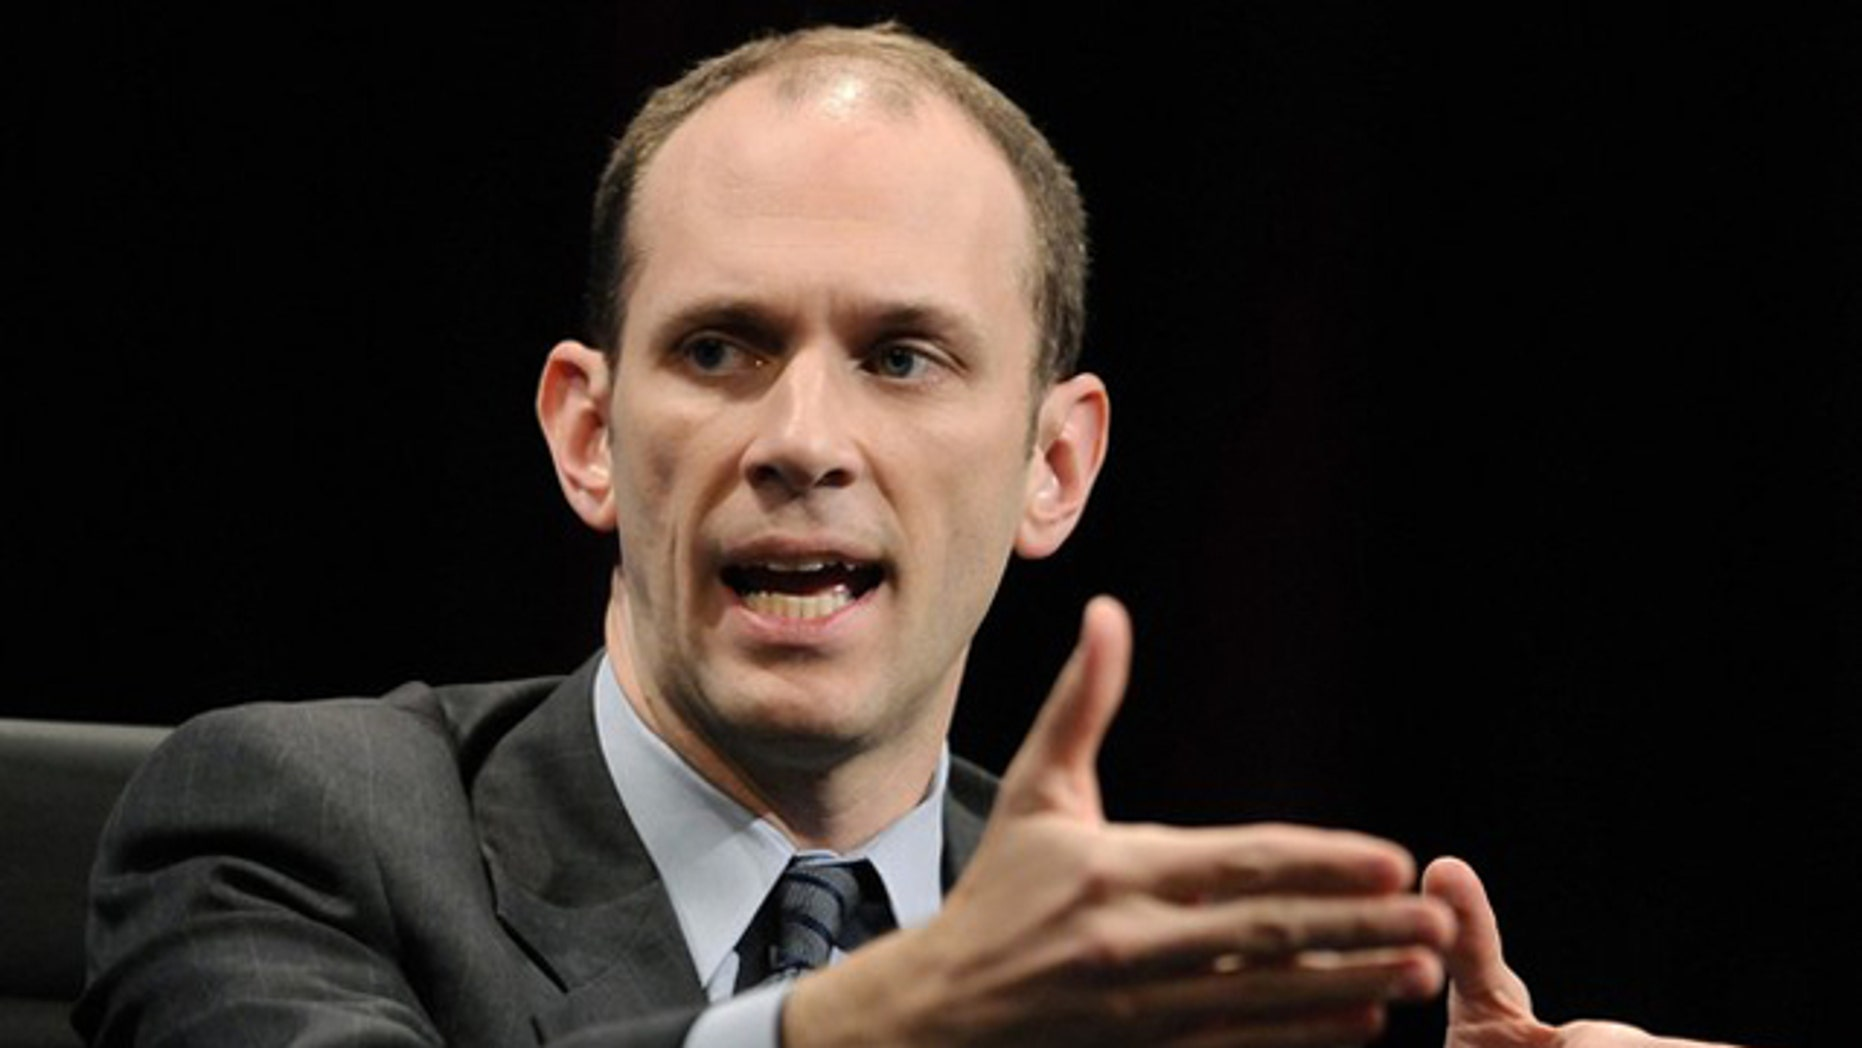 White House Council of Economic Advisers Chairman Austan Goolsbee gestures during the 2010 meeting of the Wall Street Journal CEO Council in Washington Nov. 16.